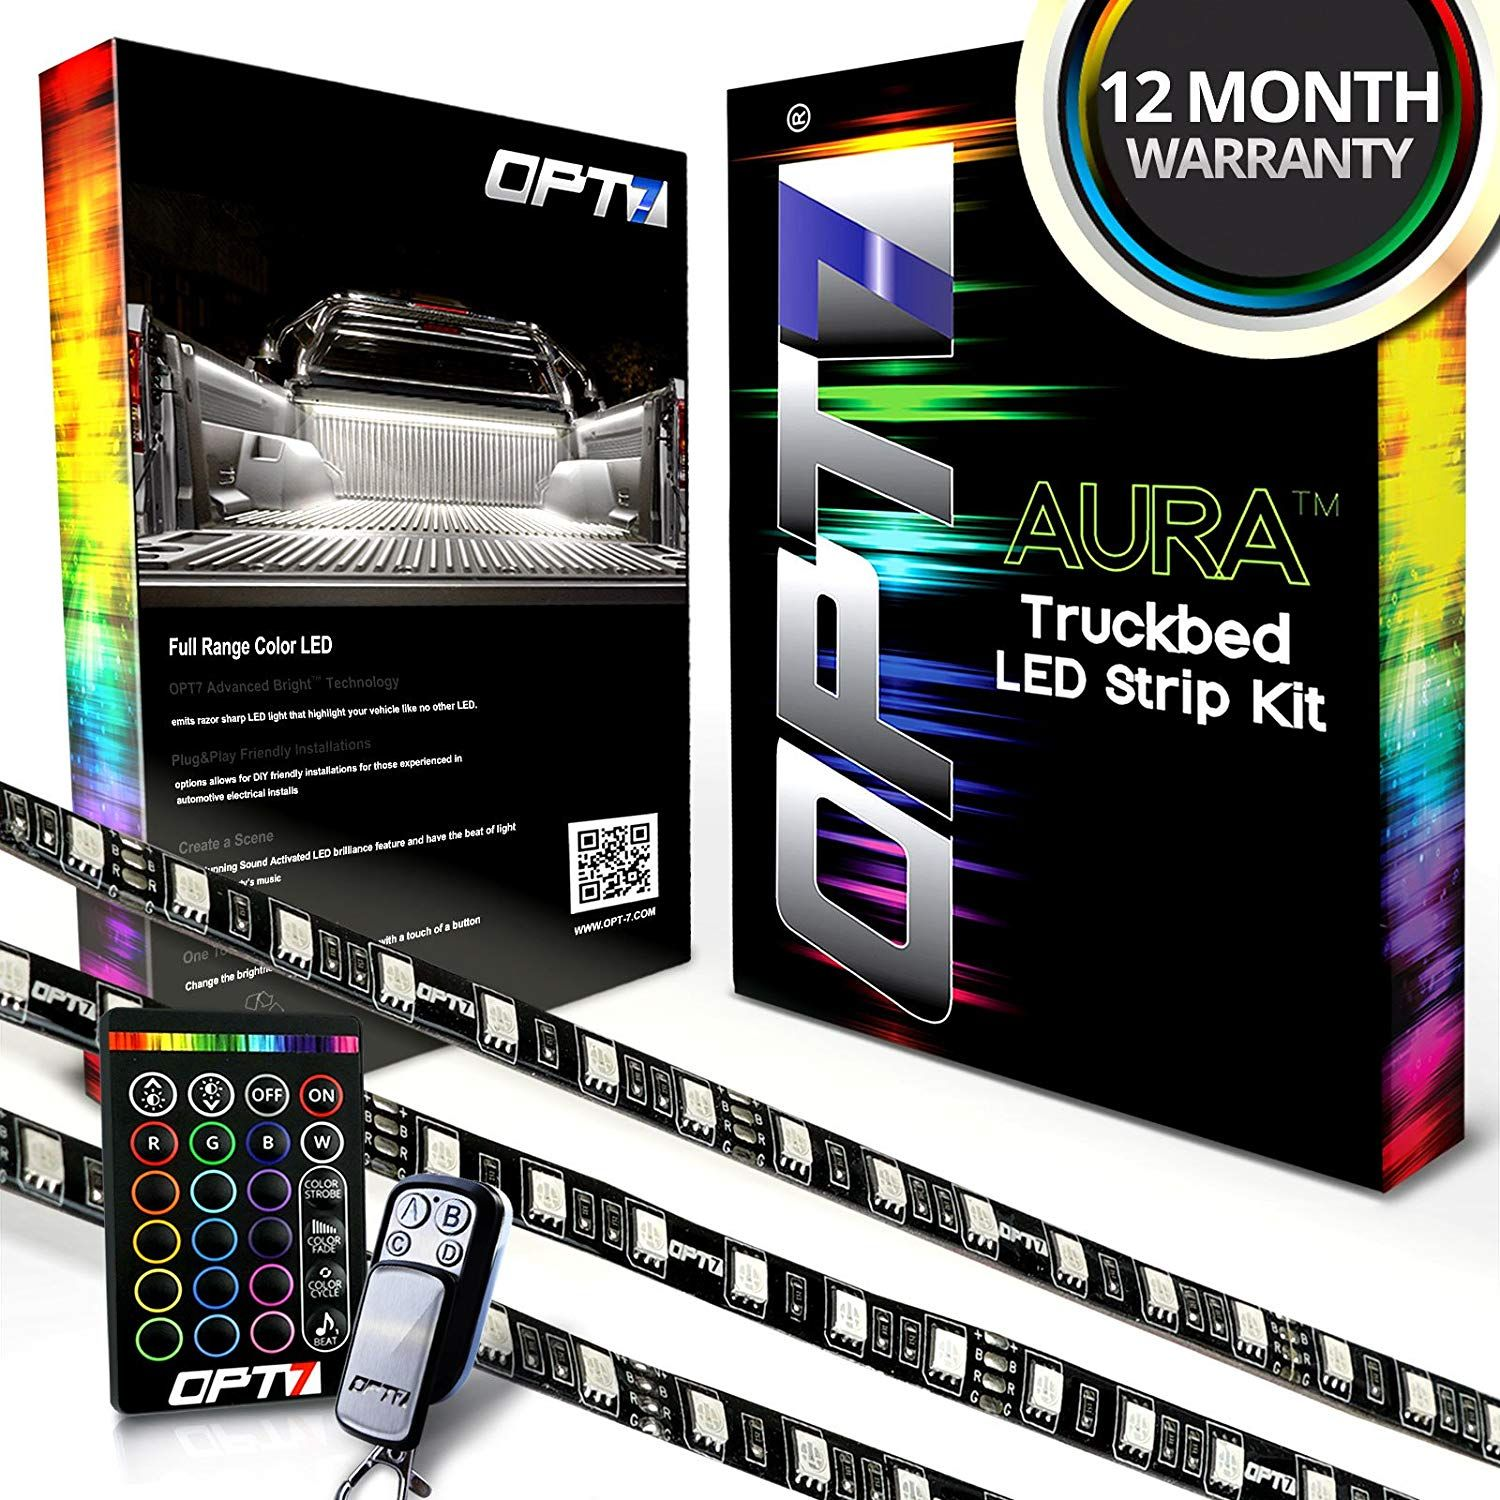 Opt7 Aura 3pc Truck Bed Full Coverage Led Lighting Strip Kit Sound Activated Multi Color Lights Wireless R Truck Bed Lights Truck Bed Led Lights For Trucks